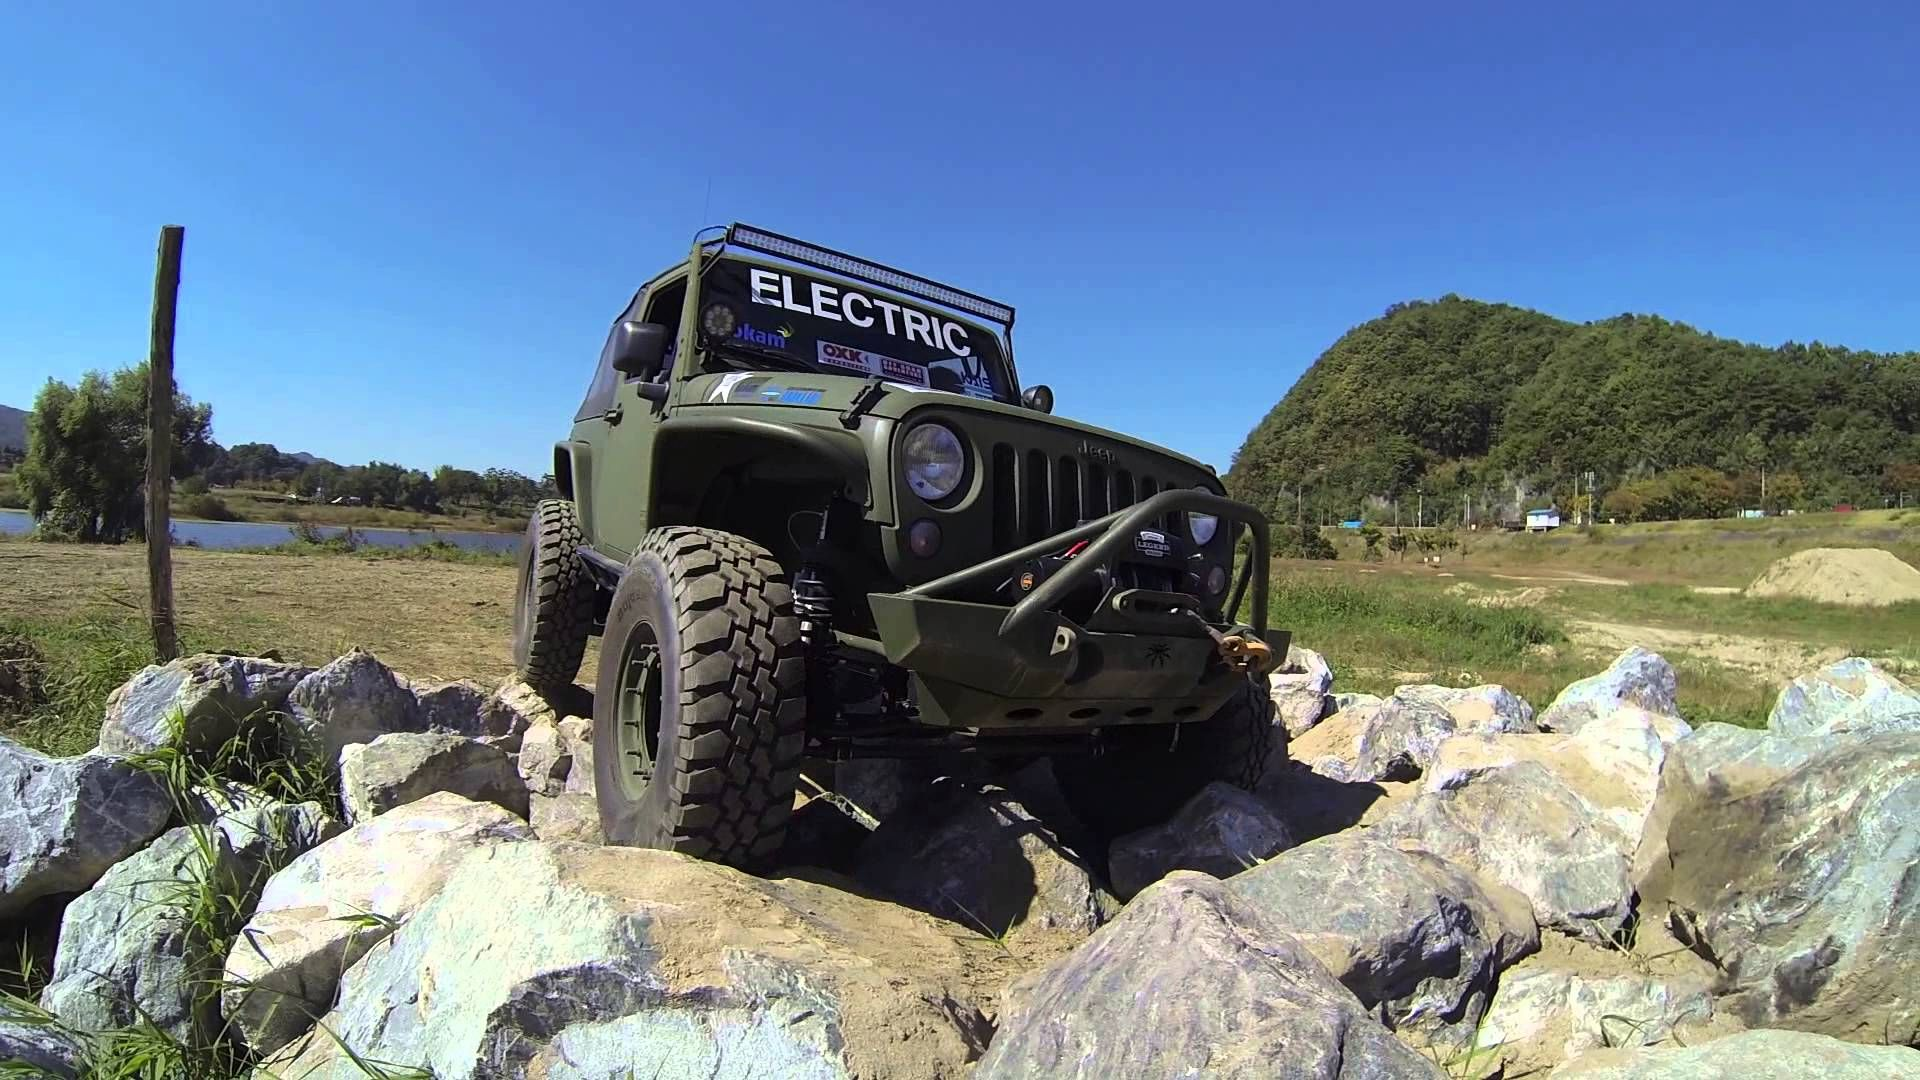 Jeep Jk Wrangler Electric Vehicle Conversion Rock Crawling Car